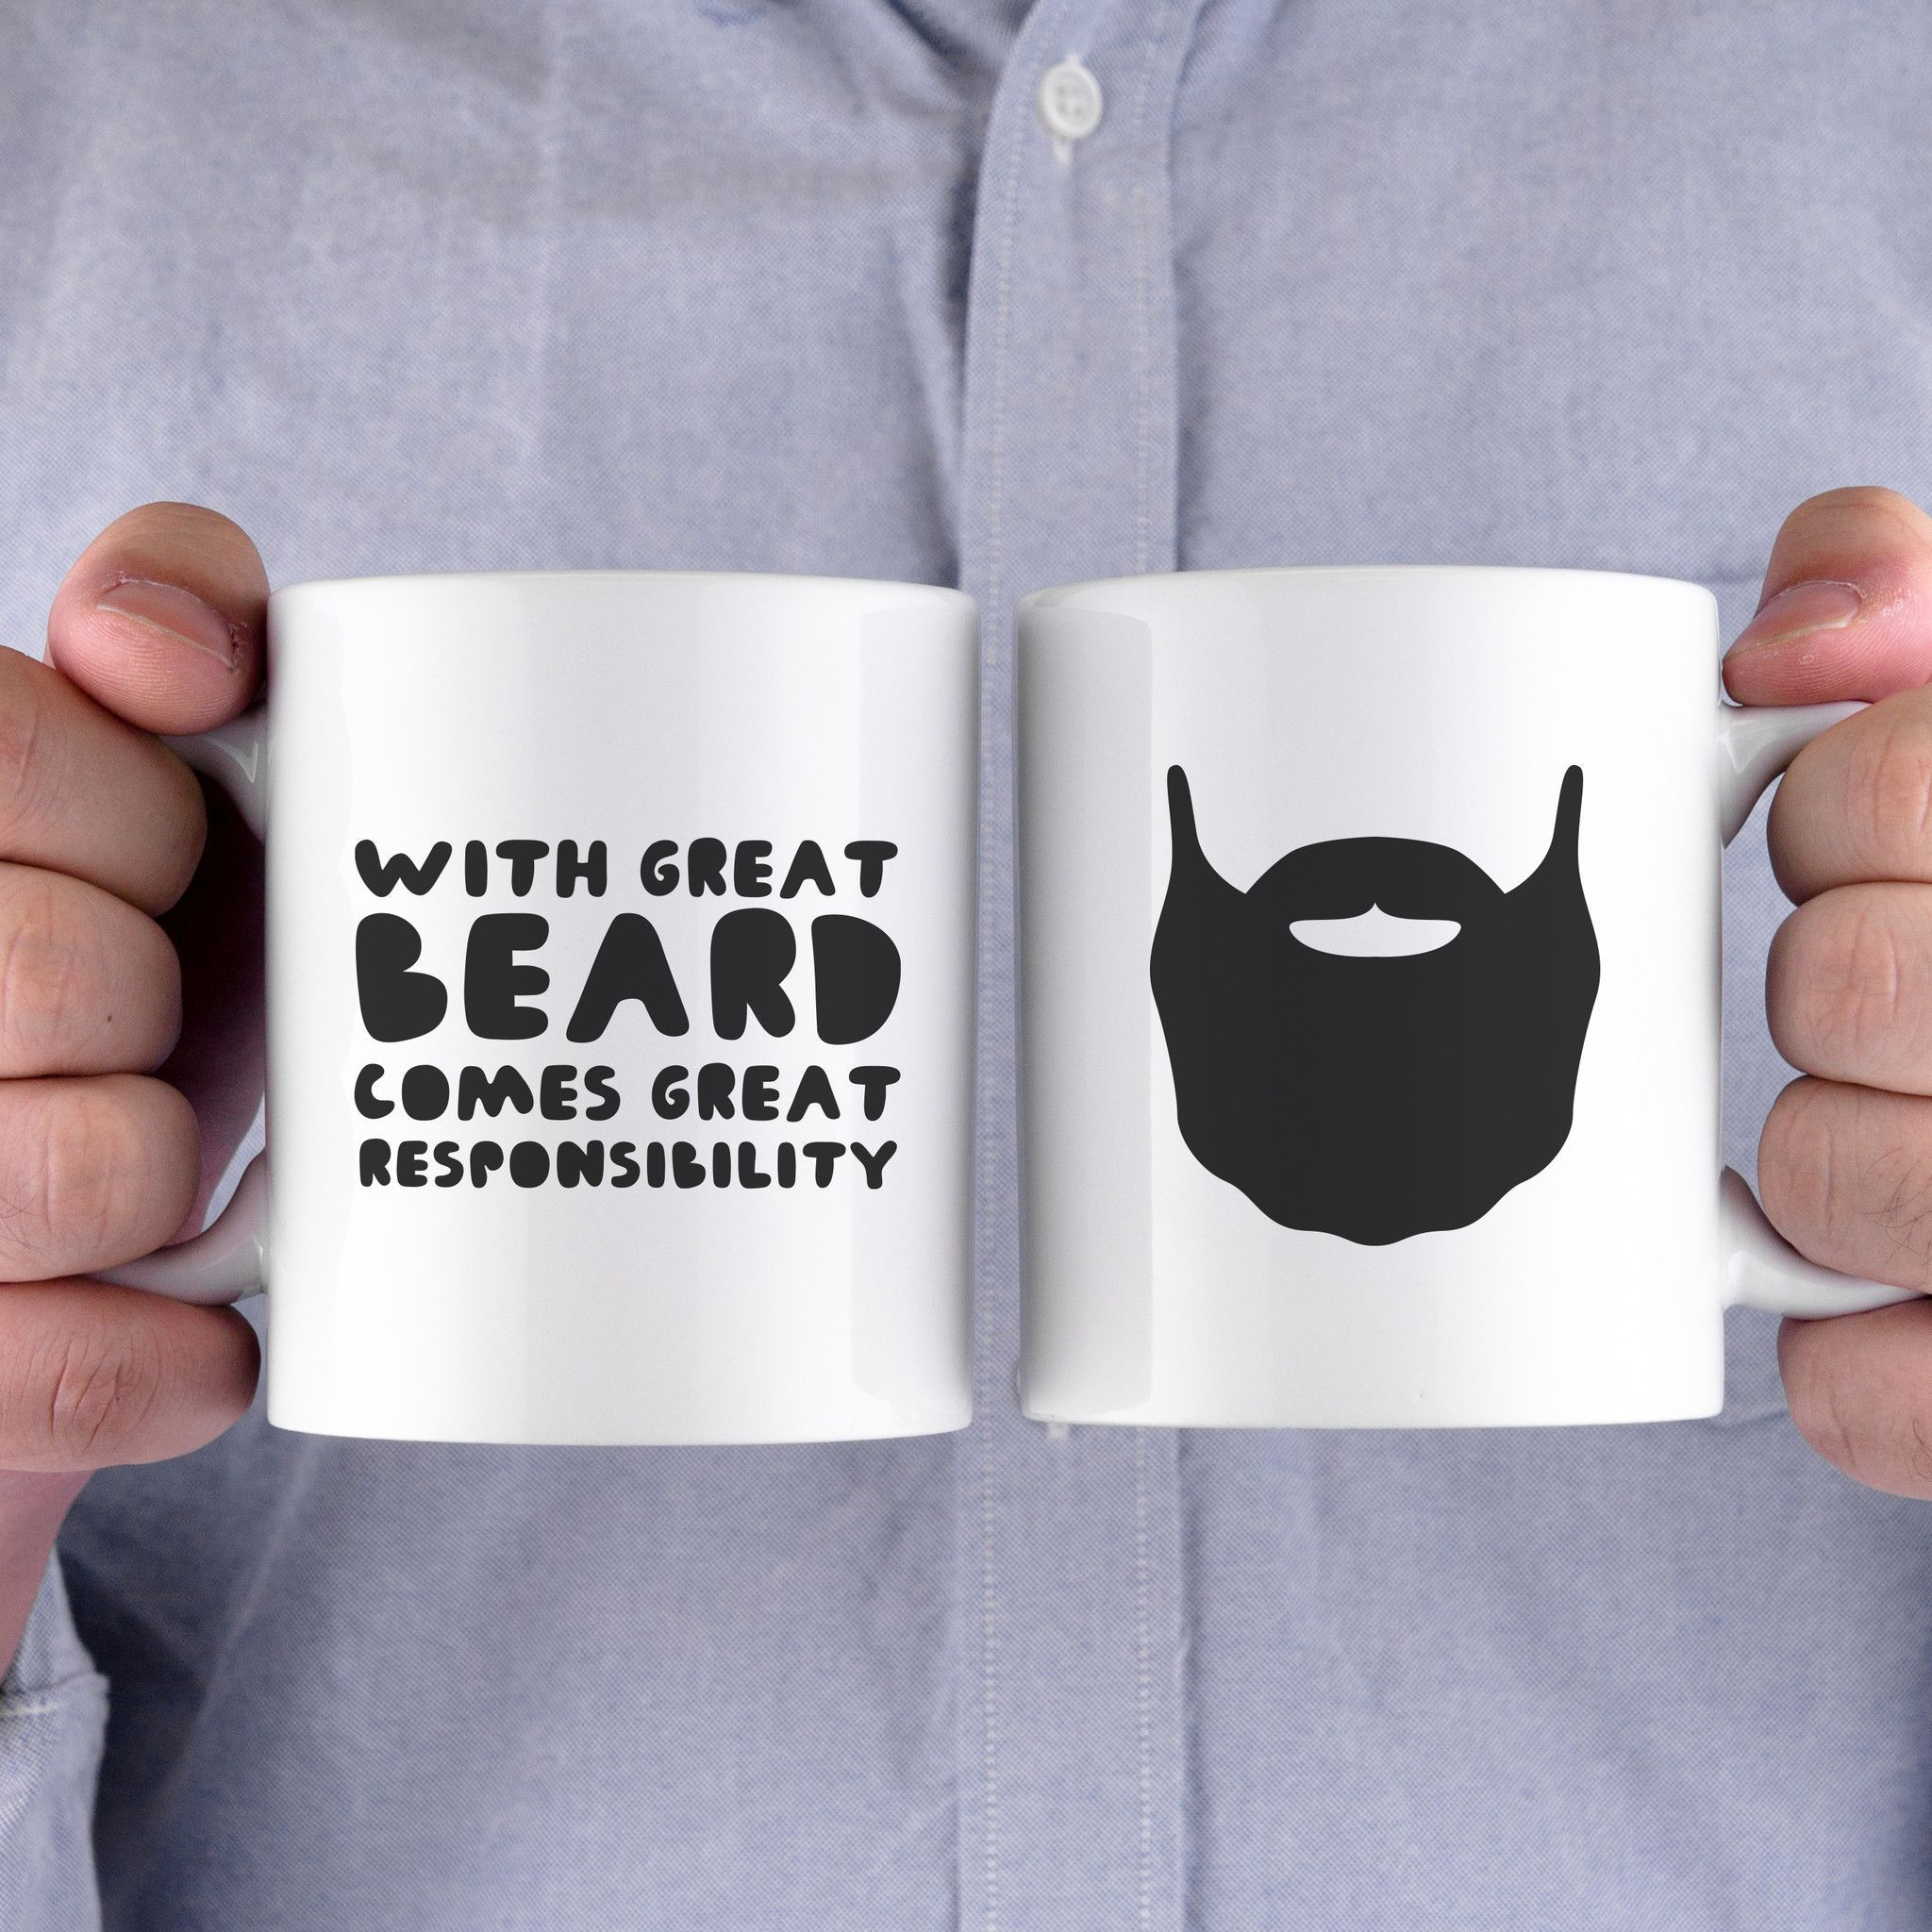 With Great Beard Comes Great Responsibility Funny Mug Gift